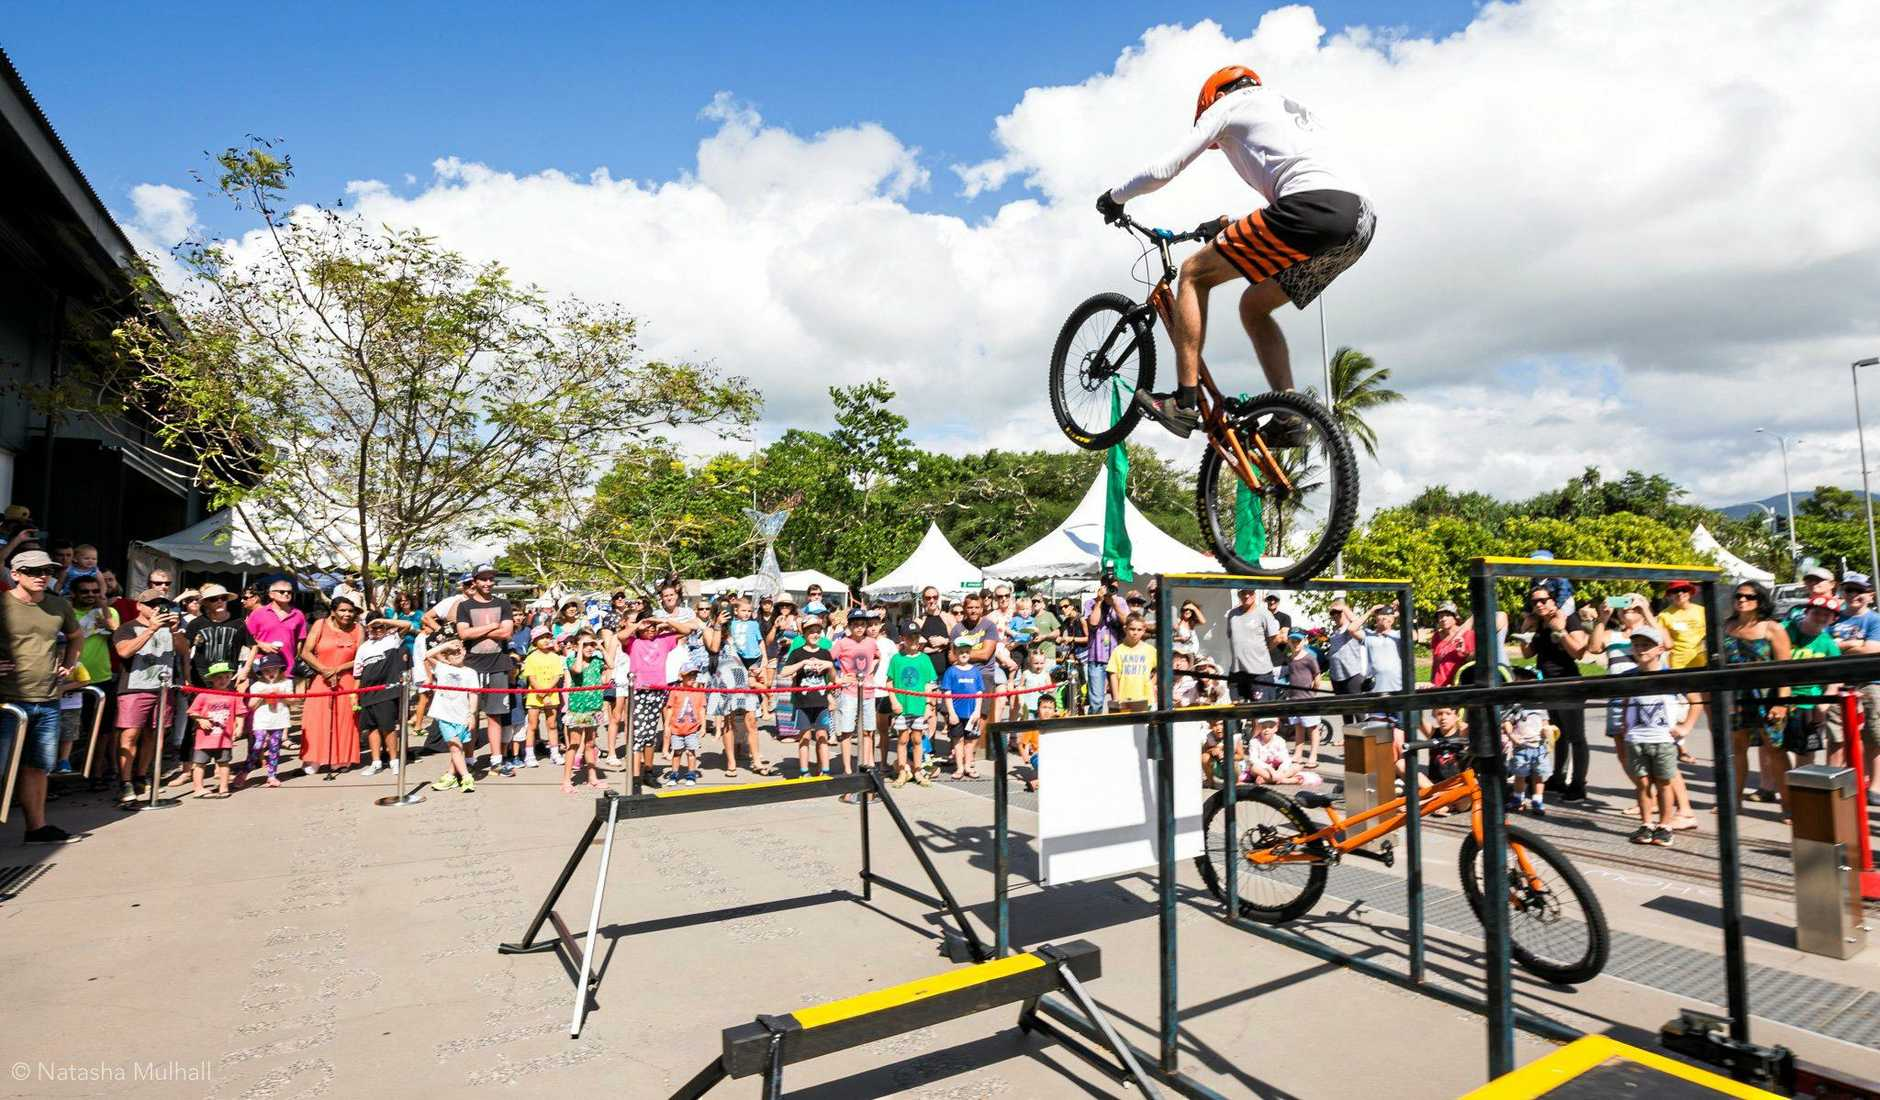 ACTION APLENTY: Borys Zagrocki, a professional trials bicycle rider, performer and instructor will be making regular appearances at the Telstra Family Fun Day.